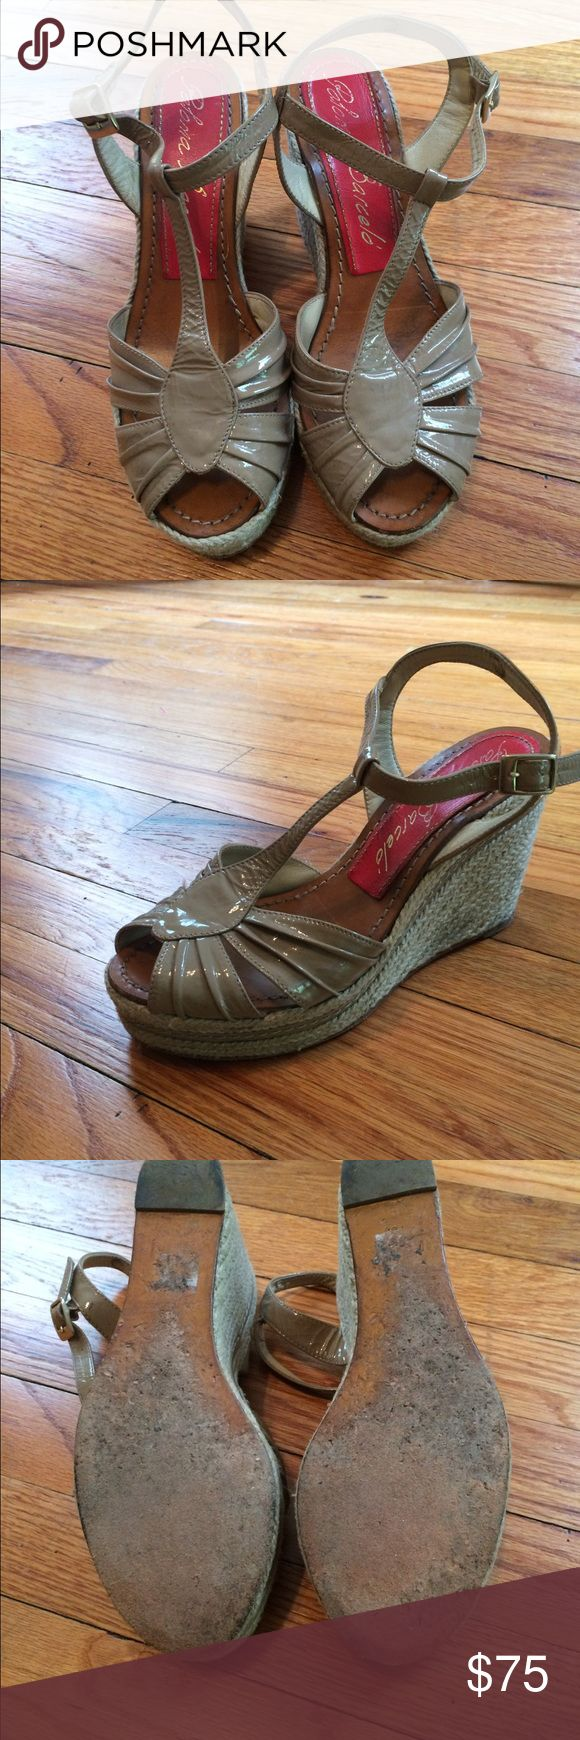 Paloma Barcelo Patent Nude Wedges Soles are worn but otherwise gorgeous shoes and fantastic condition Paloma Barcelo Shoes Wedges